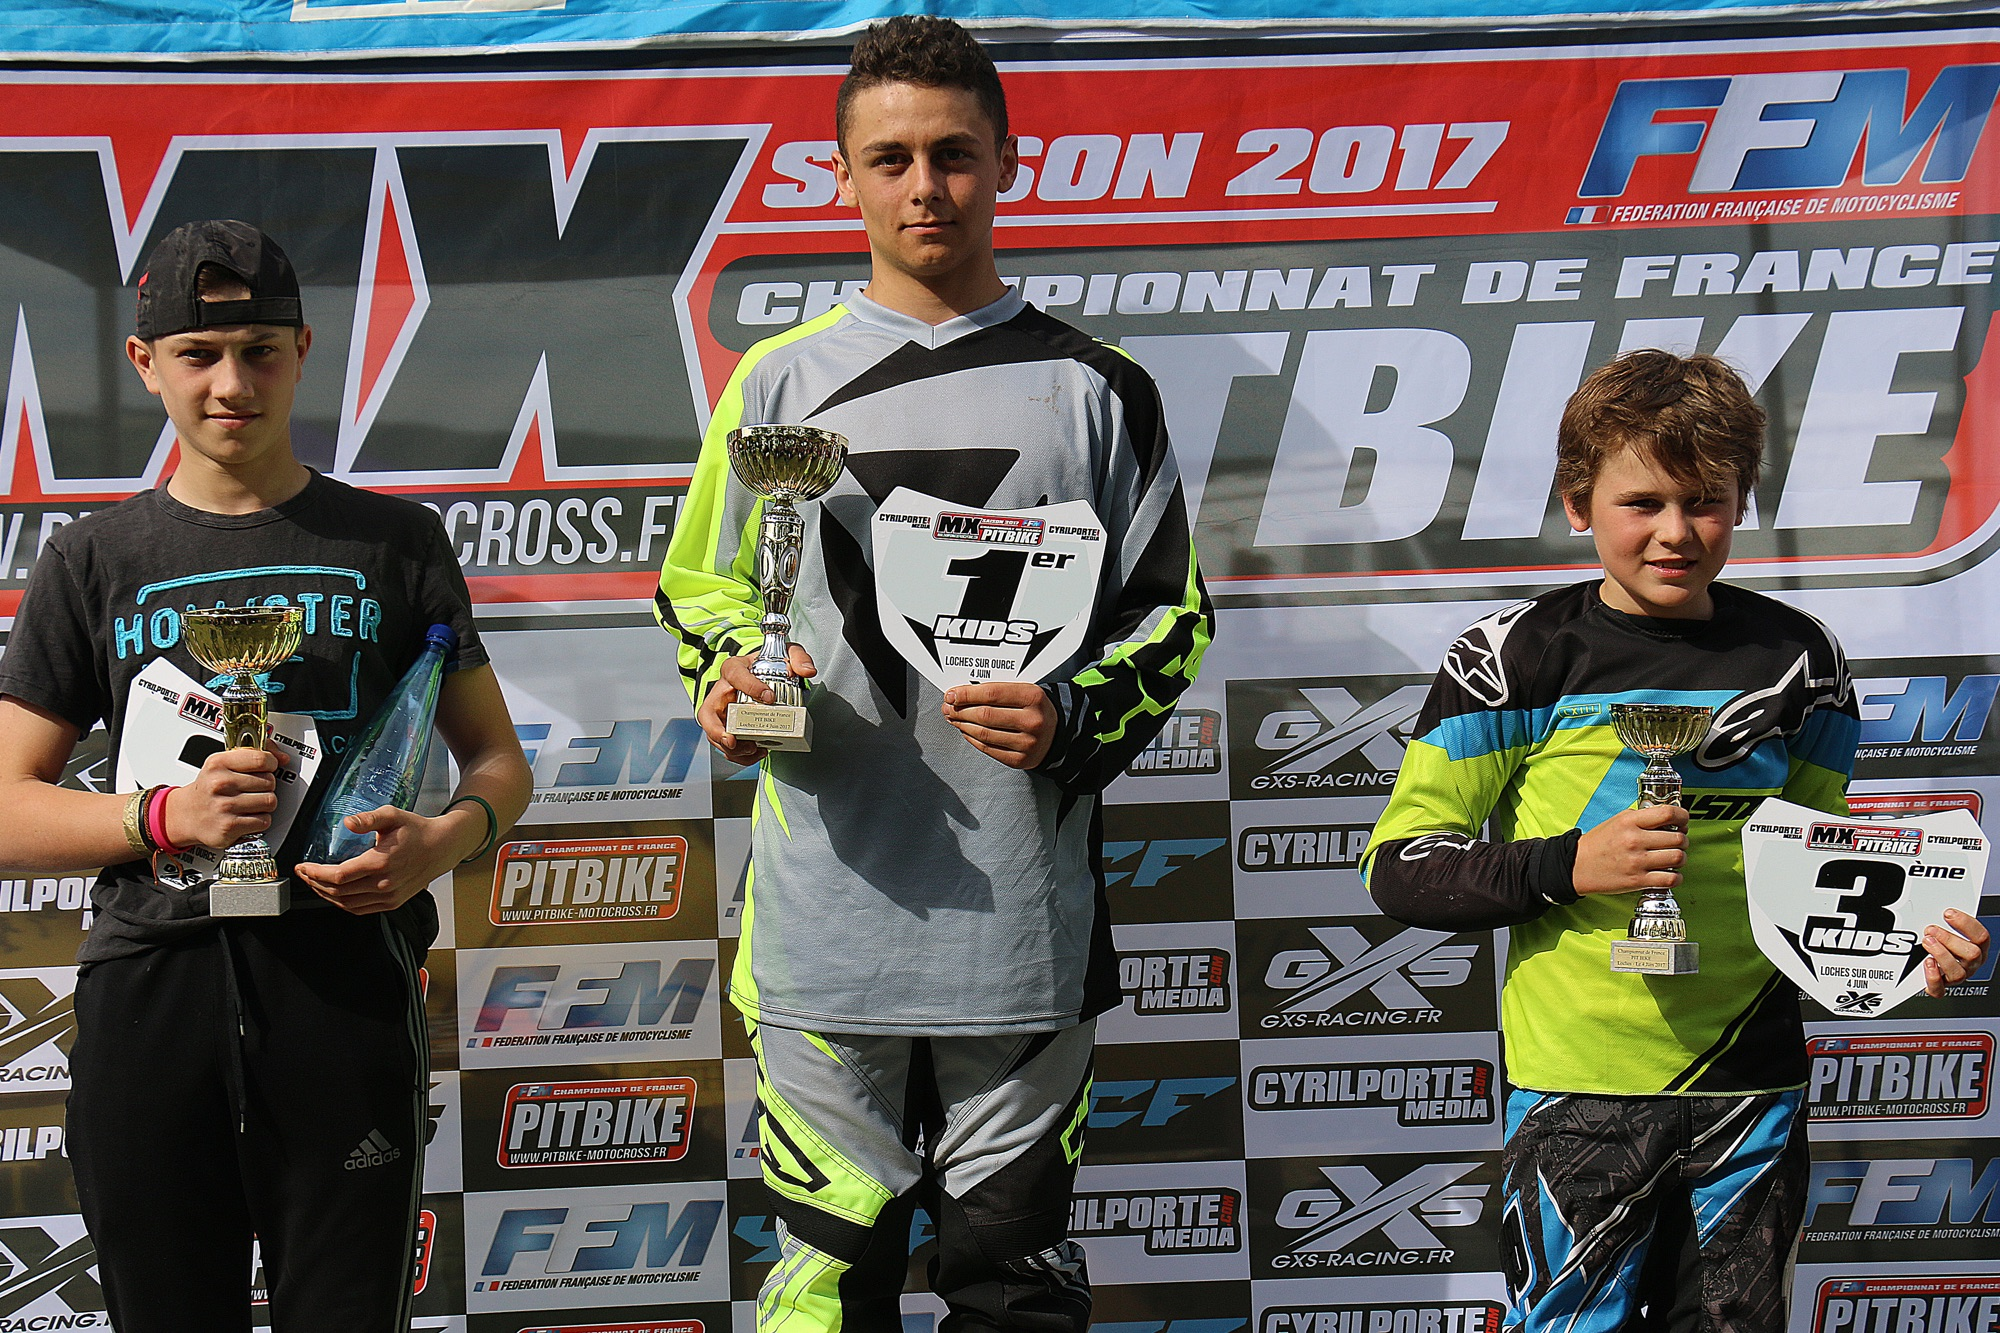 podium kids pit bike